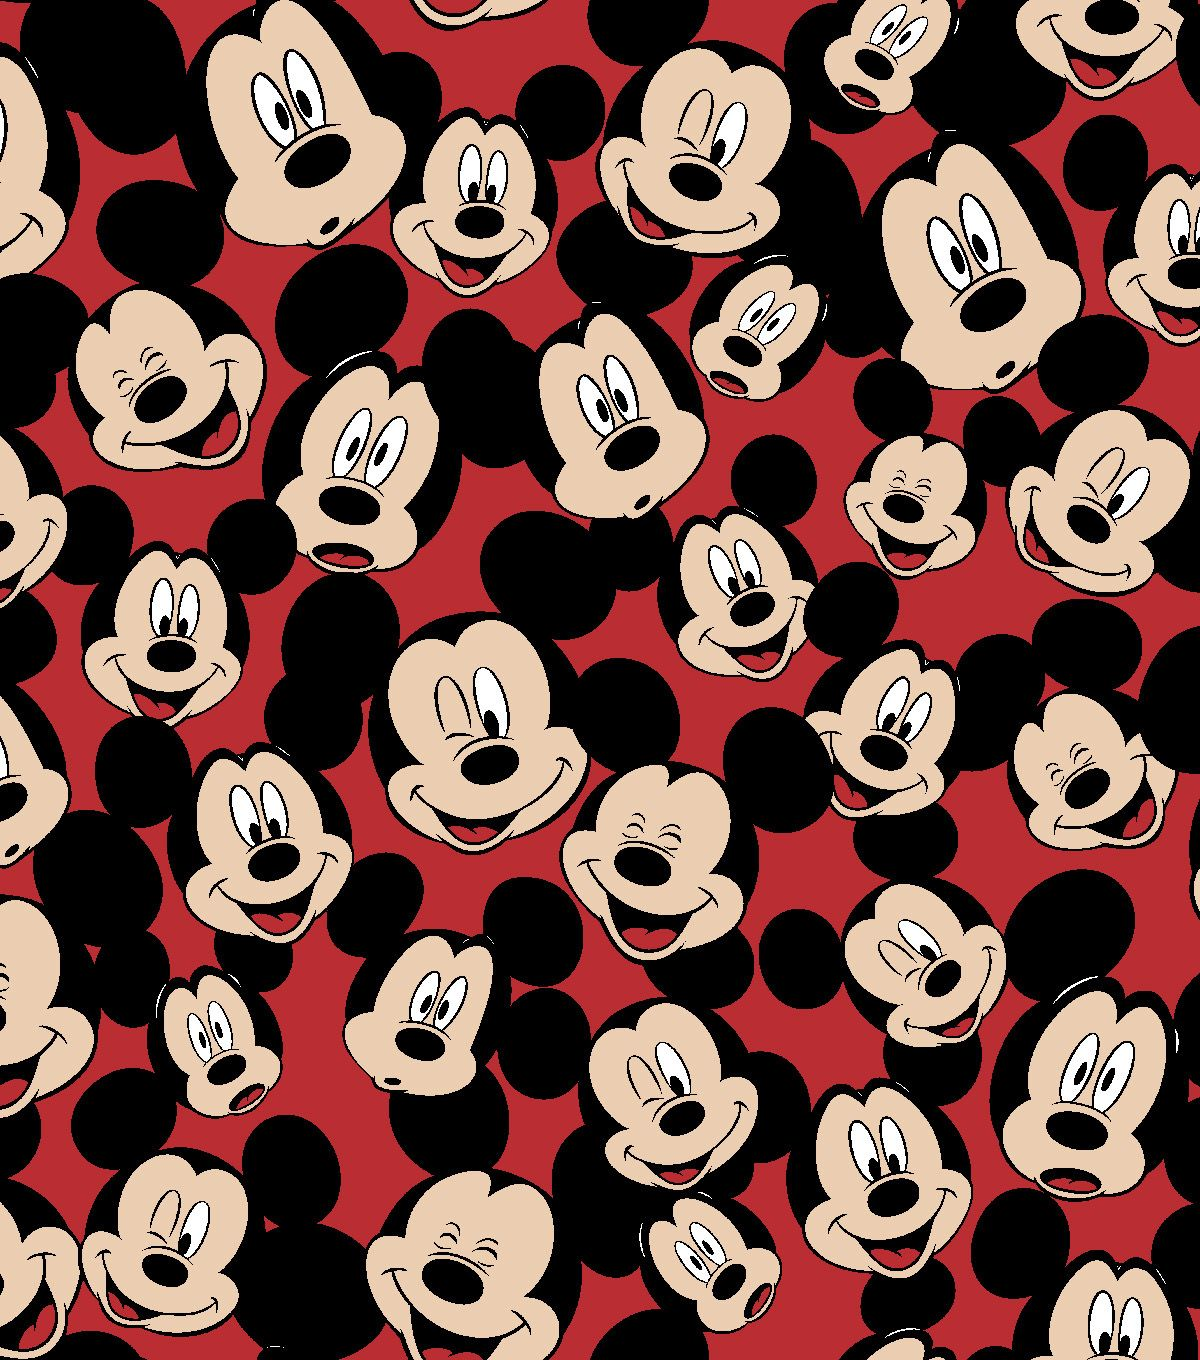 Disney Mickey Mouse Fleece Fabric 59'' Tossed Mickey Heads